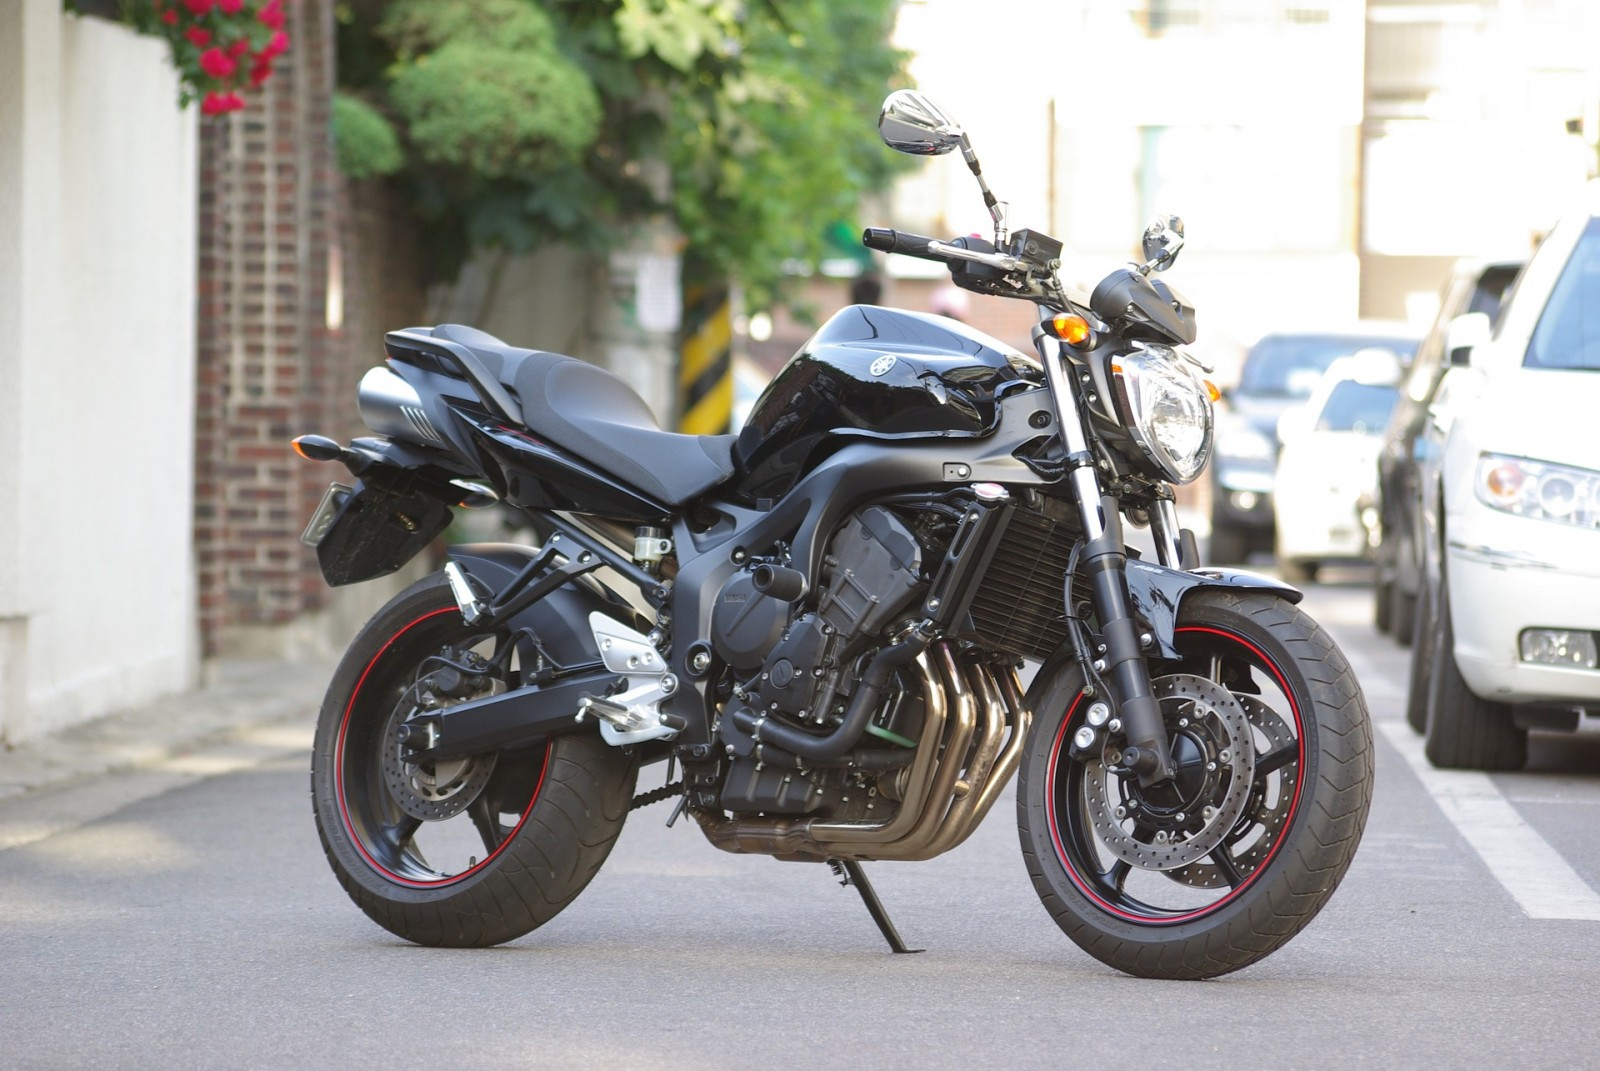 bike trader - buy my bike - sell your bike online - sell motorbike - webuy any bike - we buy any bike - webuyanybike - motorcycle trader - value my motorbike - biketrader